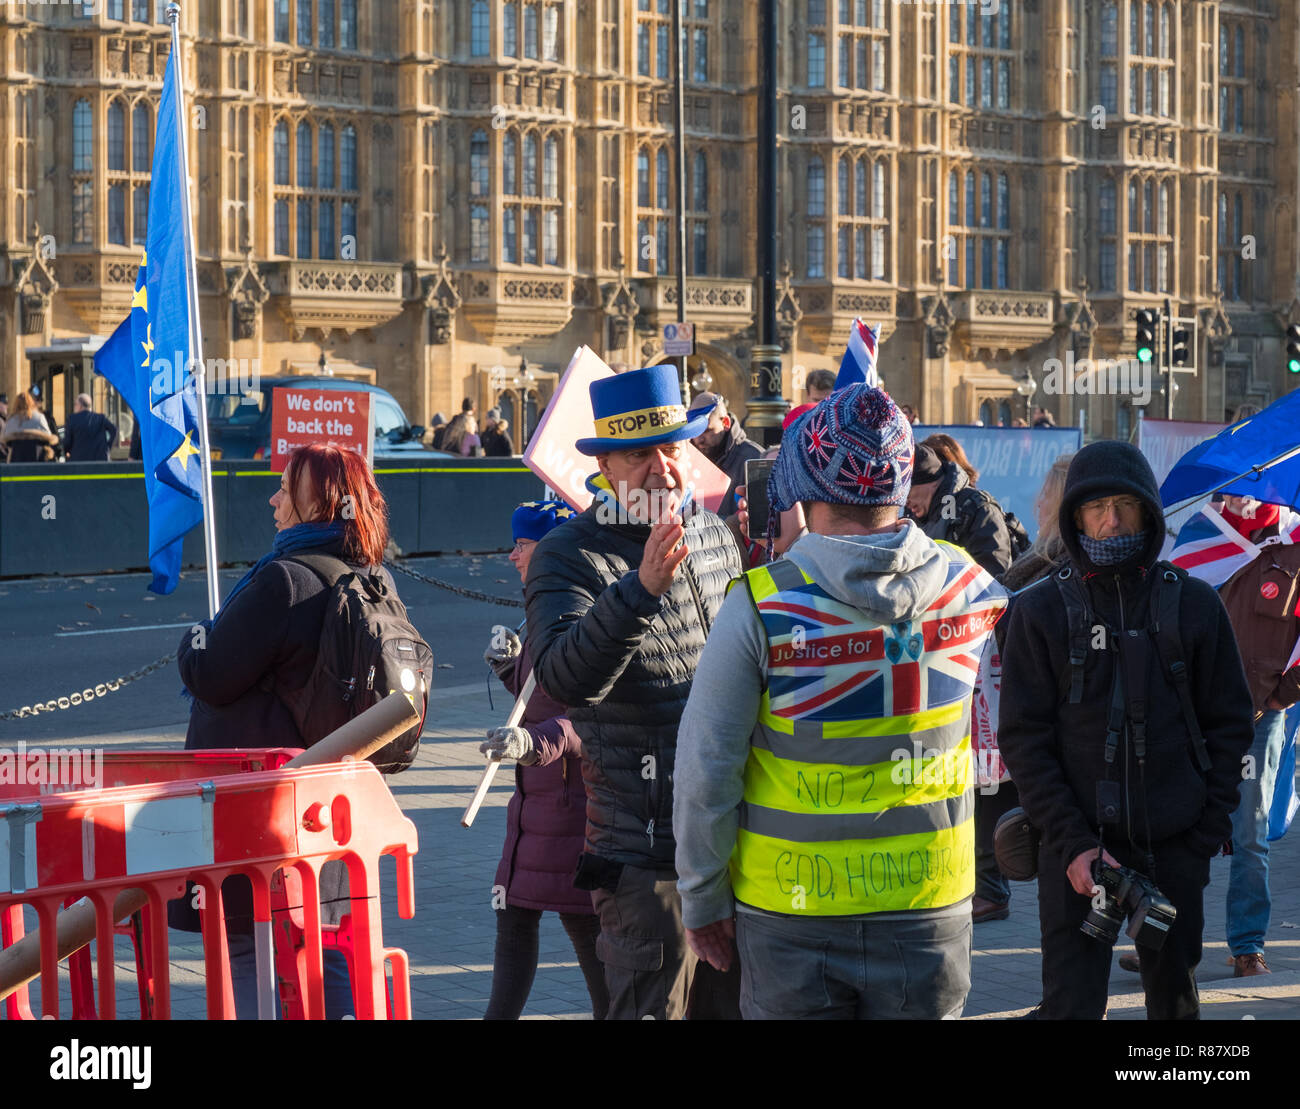 Brexit protest and argument between both leavers and remainers outside the Houses of Parliament, Abingdon Street, London - Stock Image